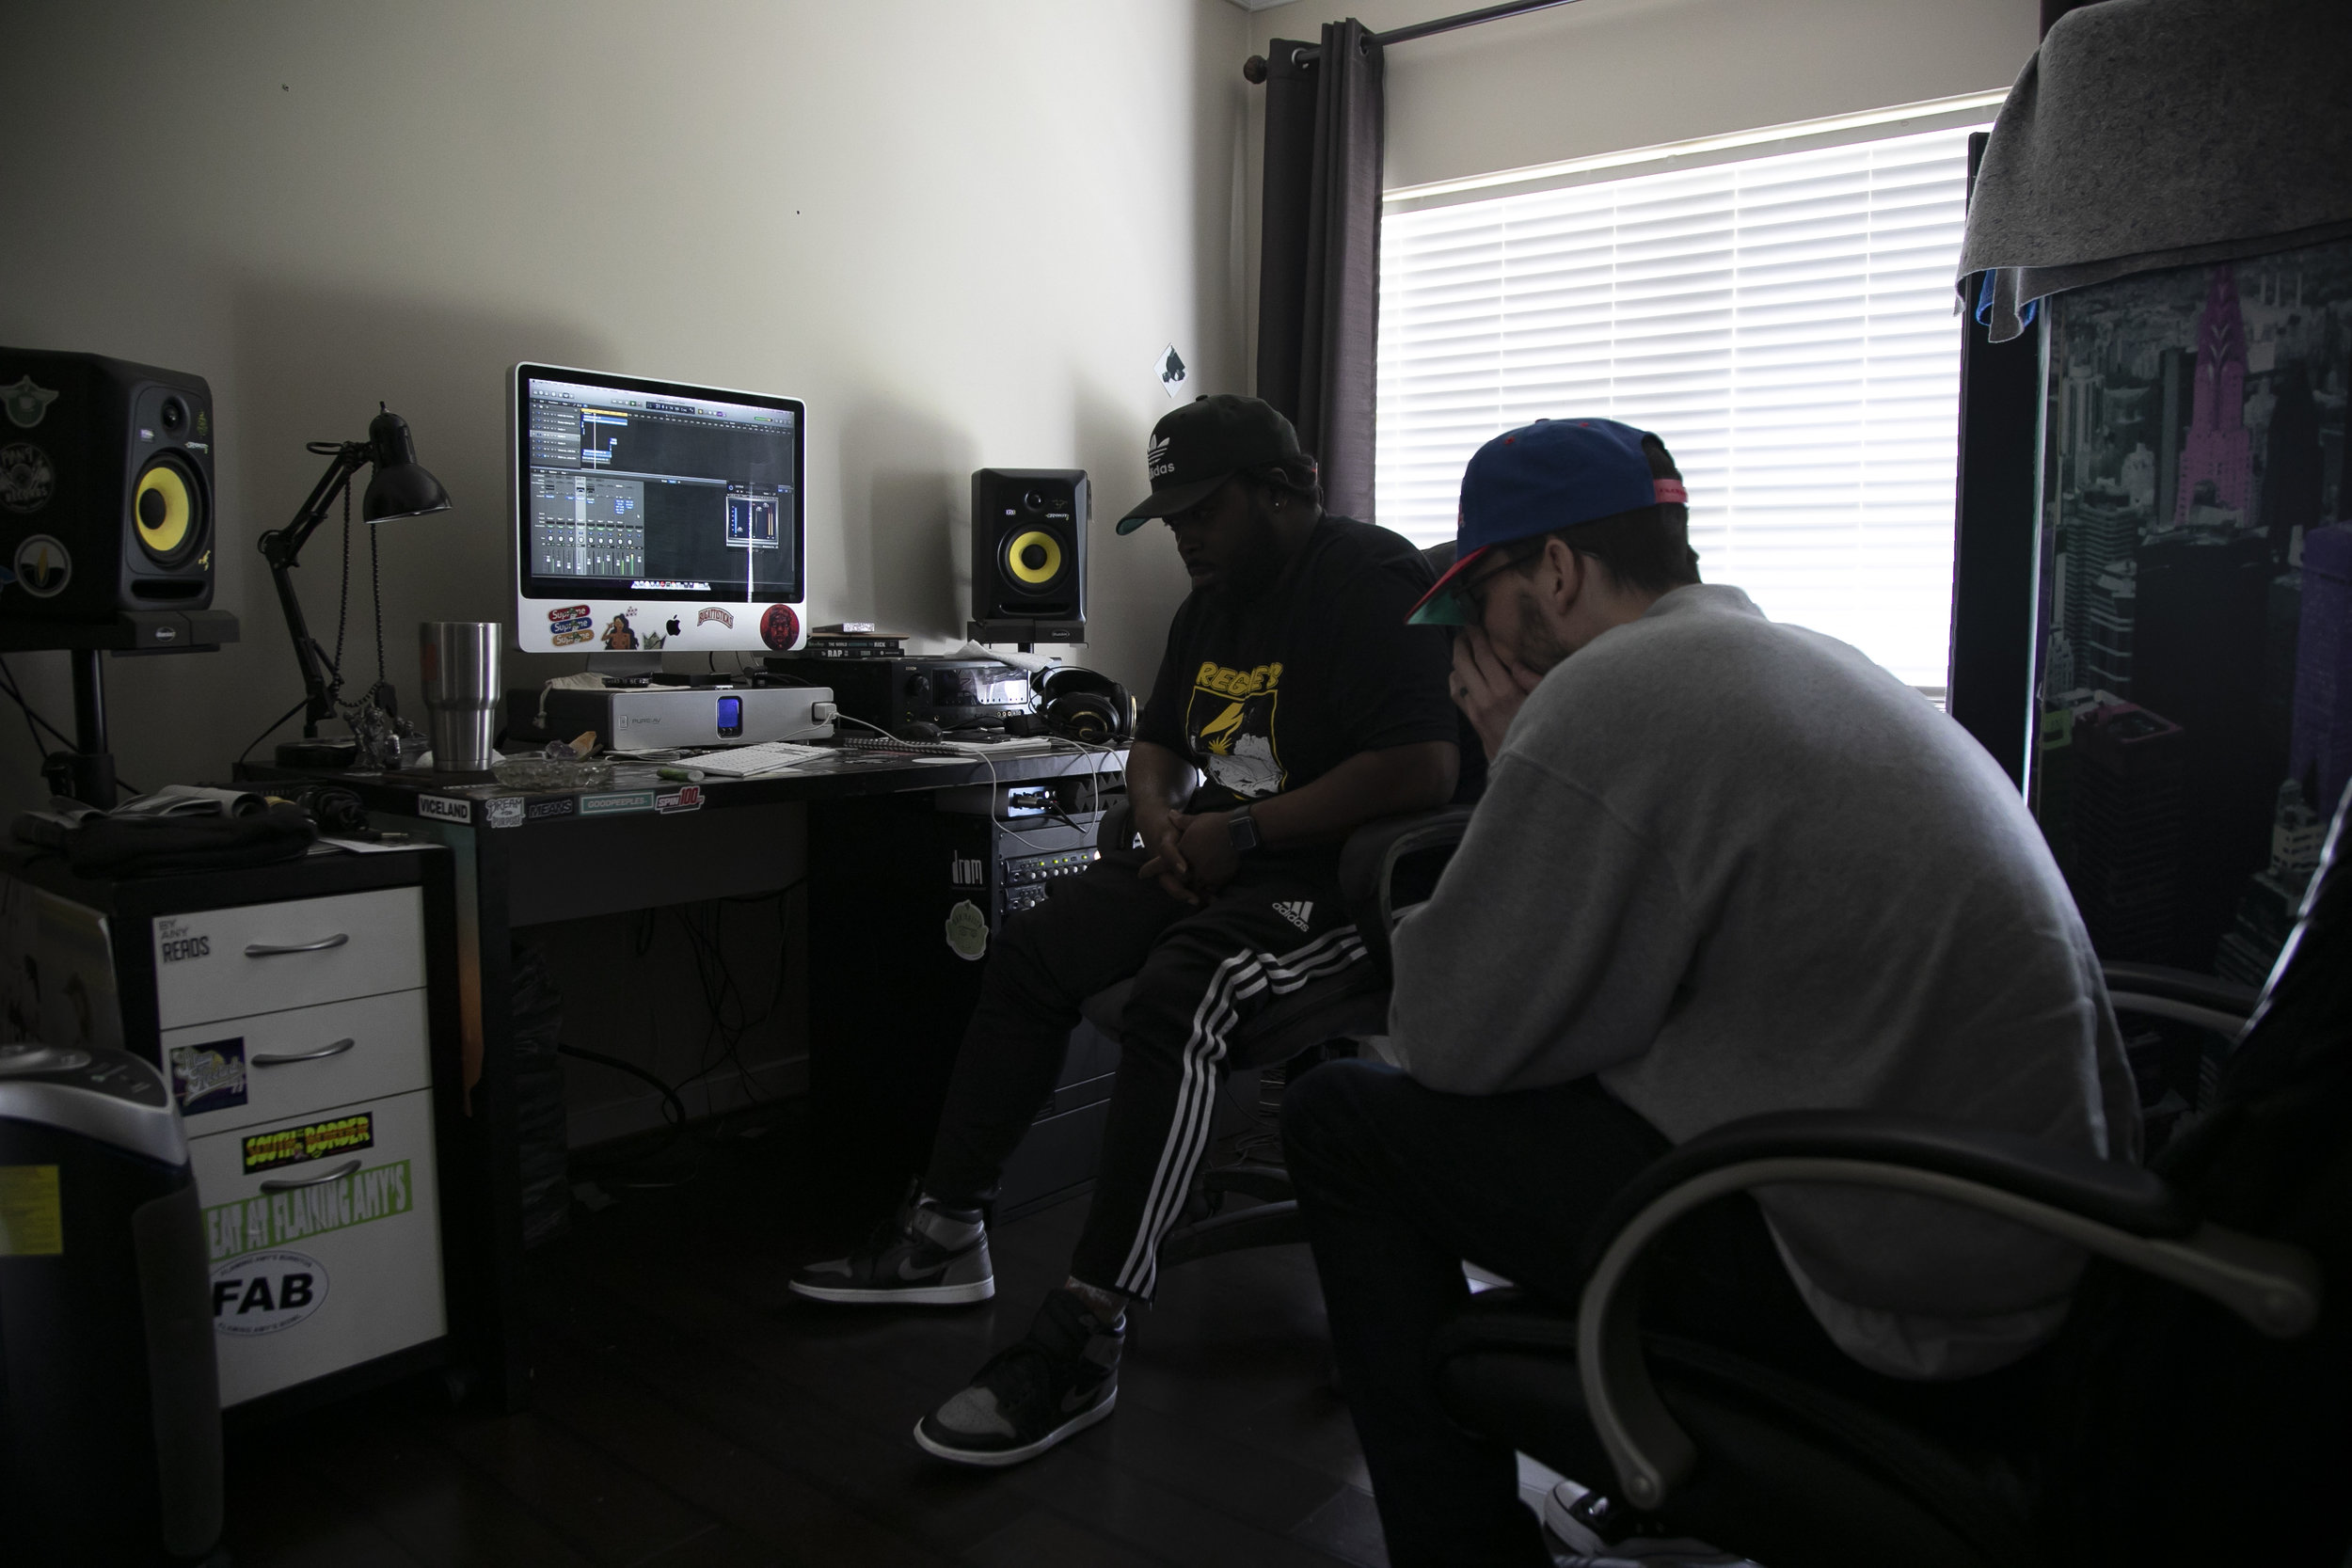 Mike and Richmond Producer Fanran listen to the final cut of an album for any production issues on March 30, 2019 in Richmond, Virginia. For the most part, Mike engineers and mixes projects for both local and high profile artists. He says it's the real breadwinner for him.